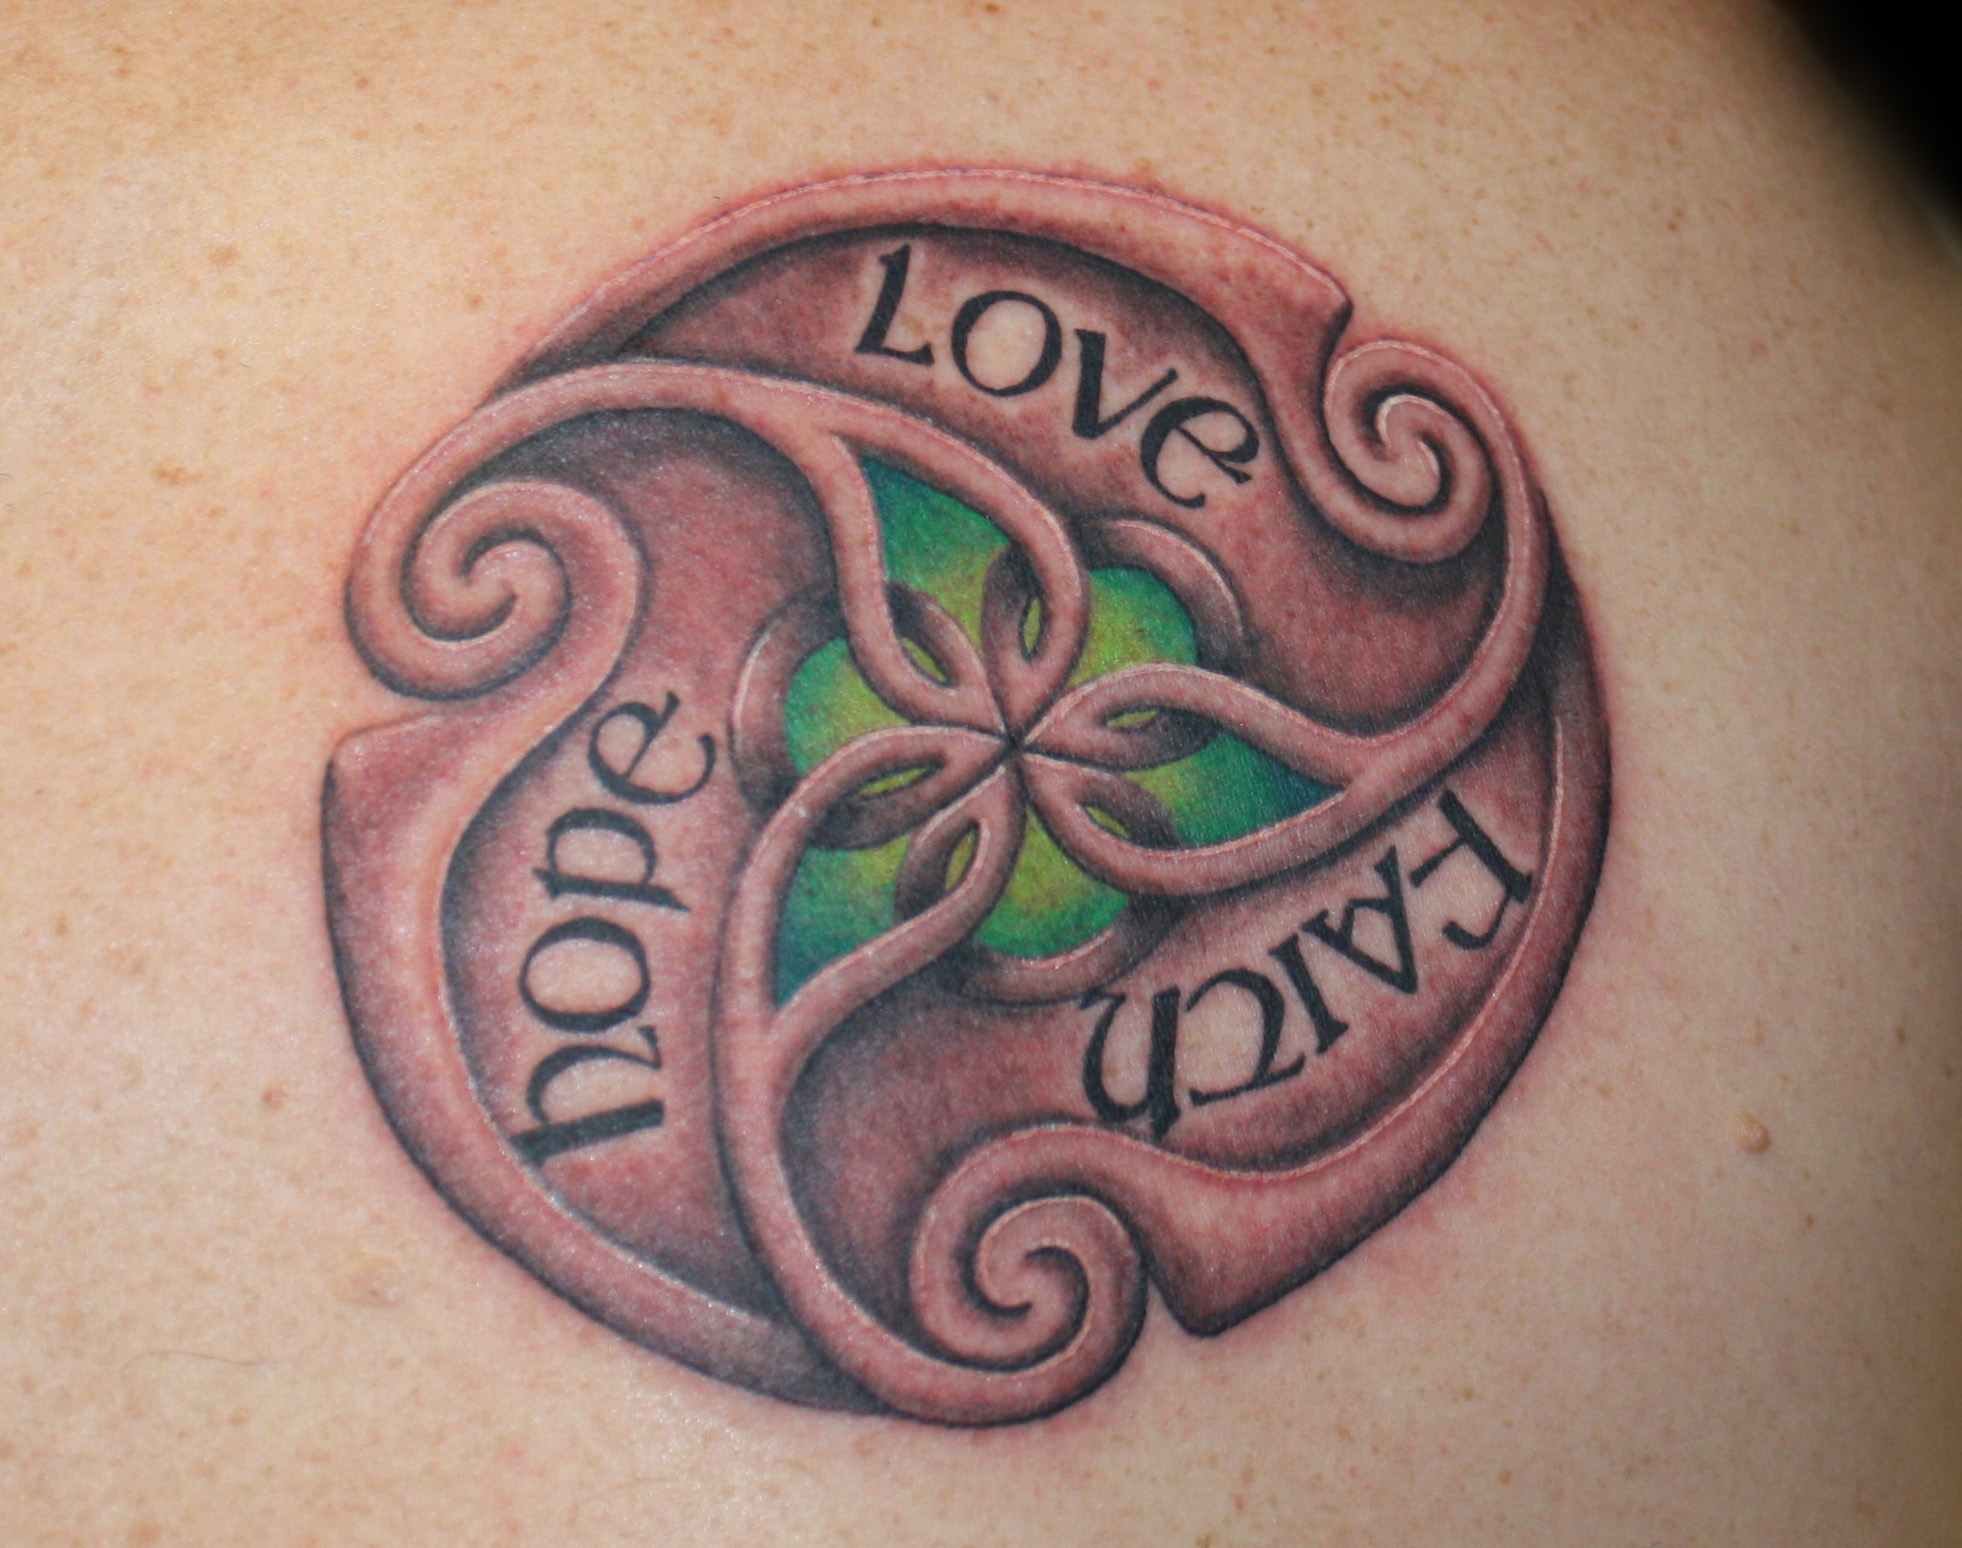 Hope Love Faith Tattoo Design